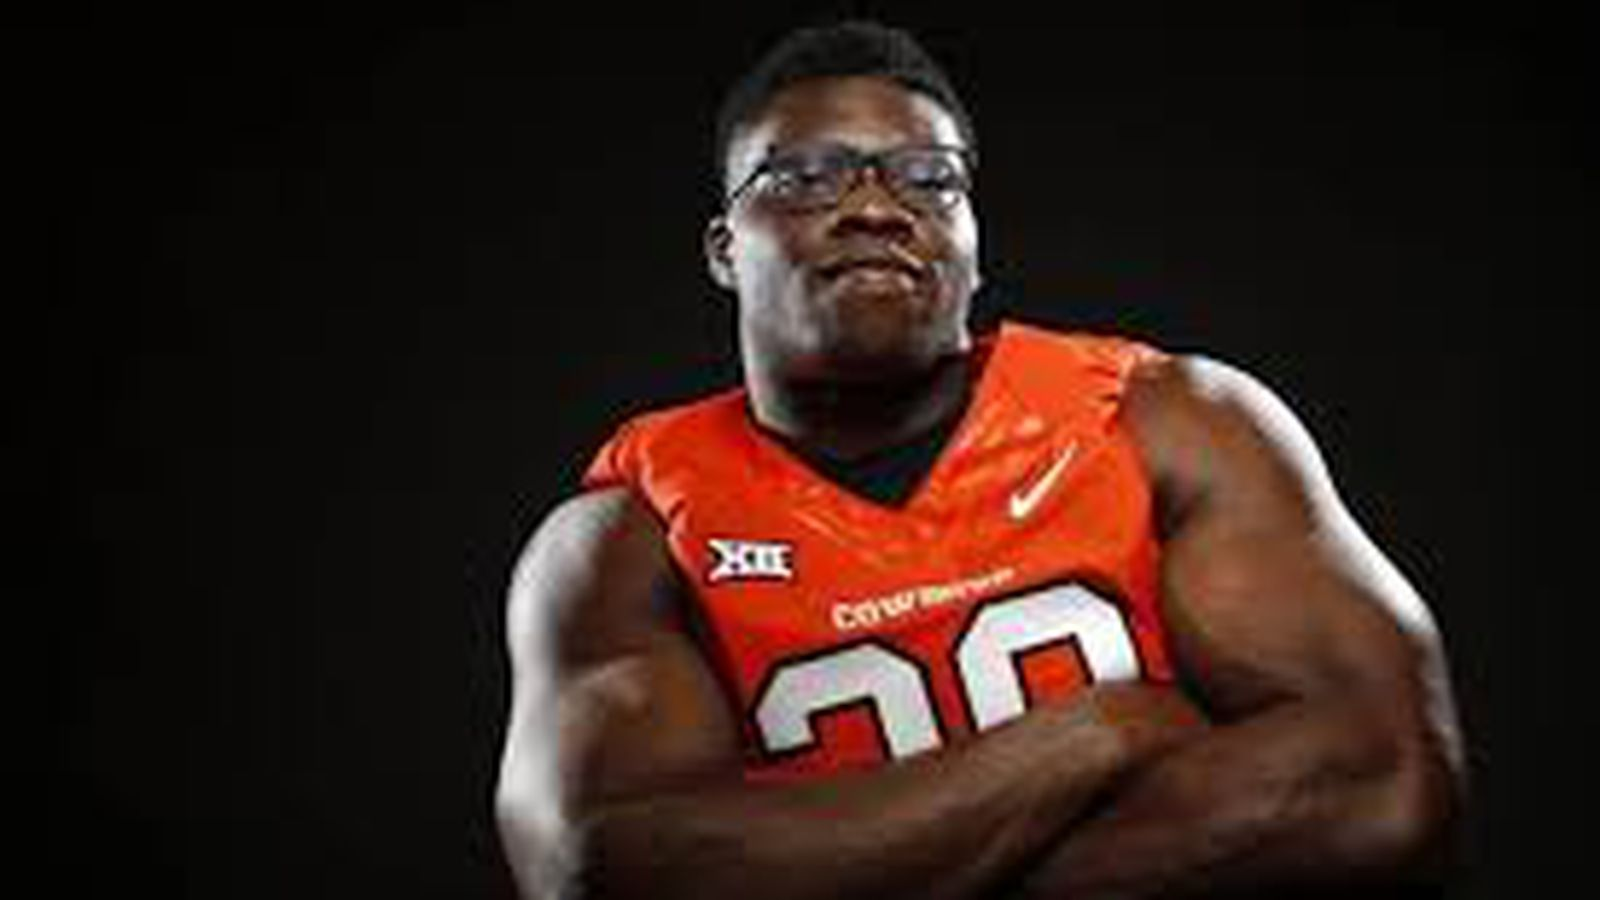 Emmanuel Ogbah: 2016 NFL Draft : Player Profile